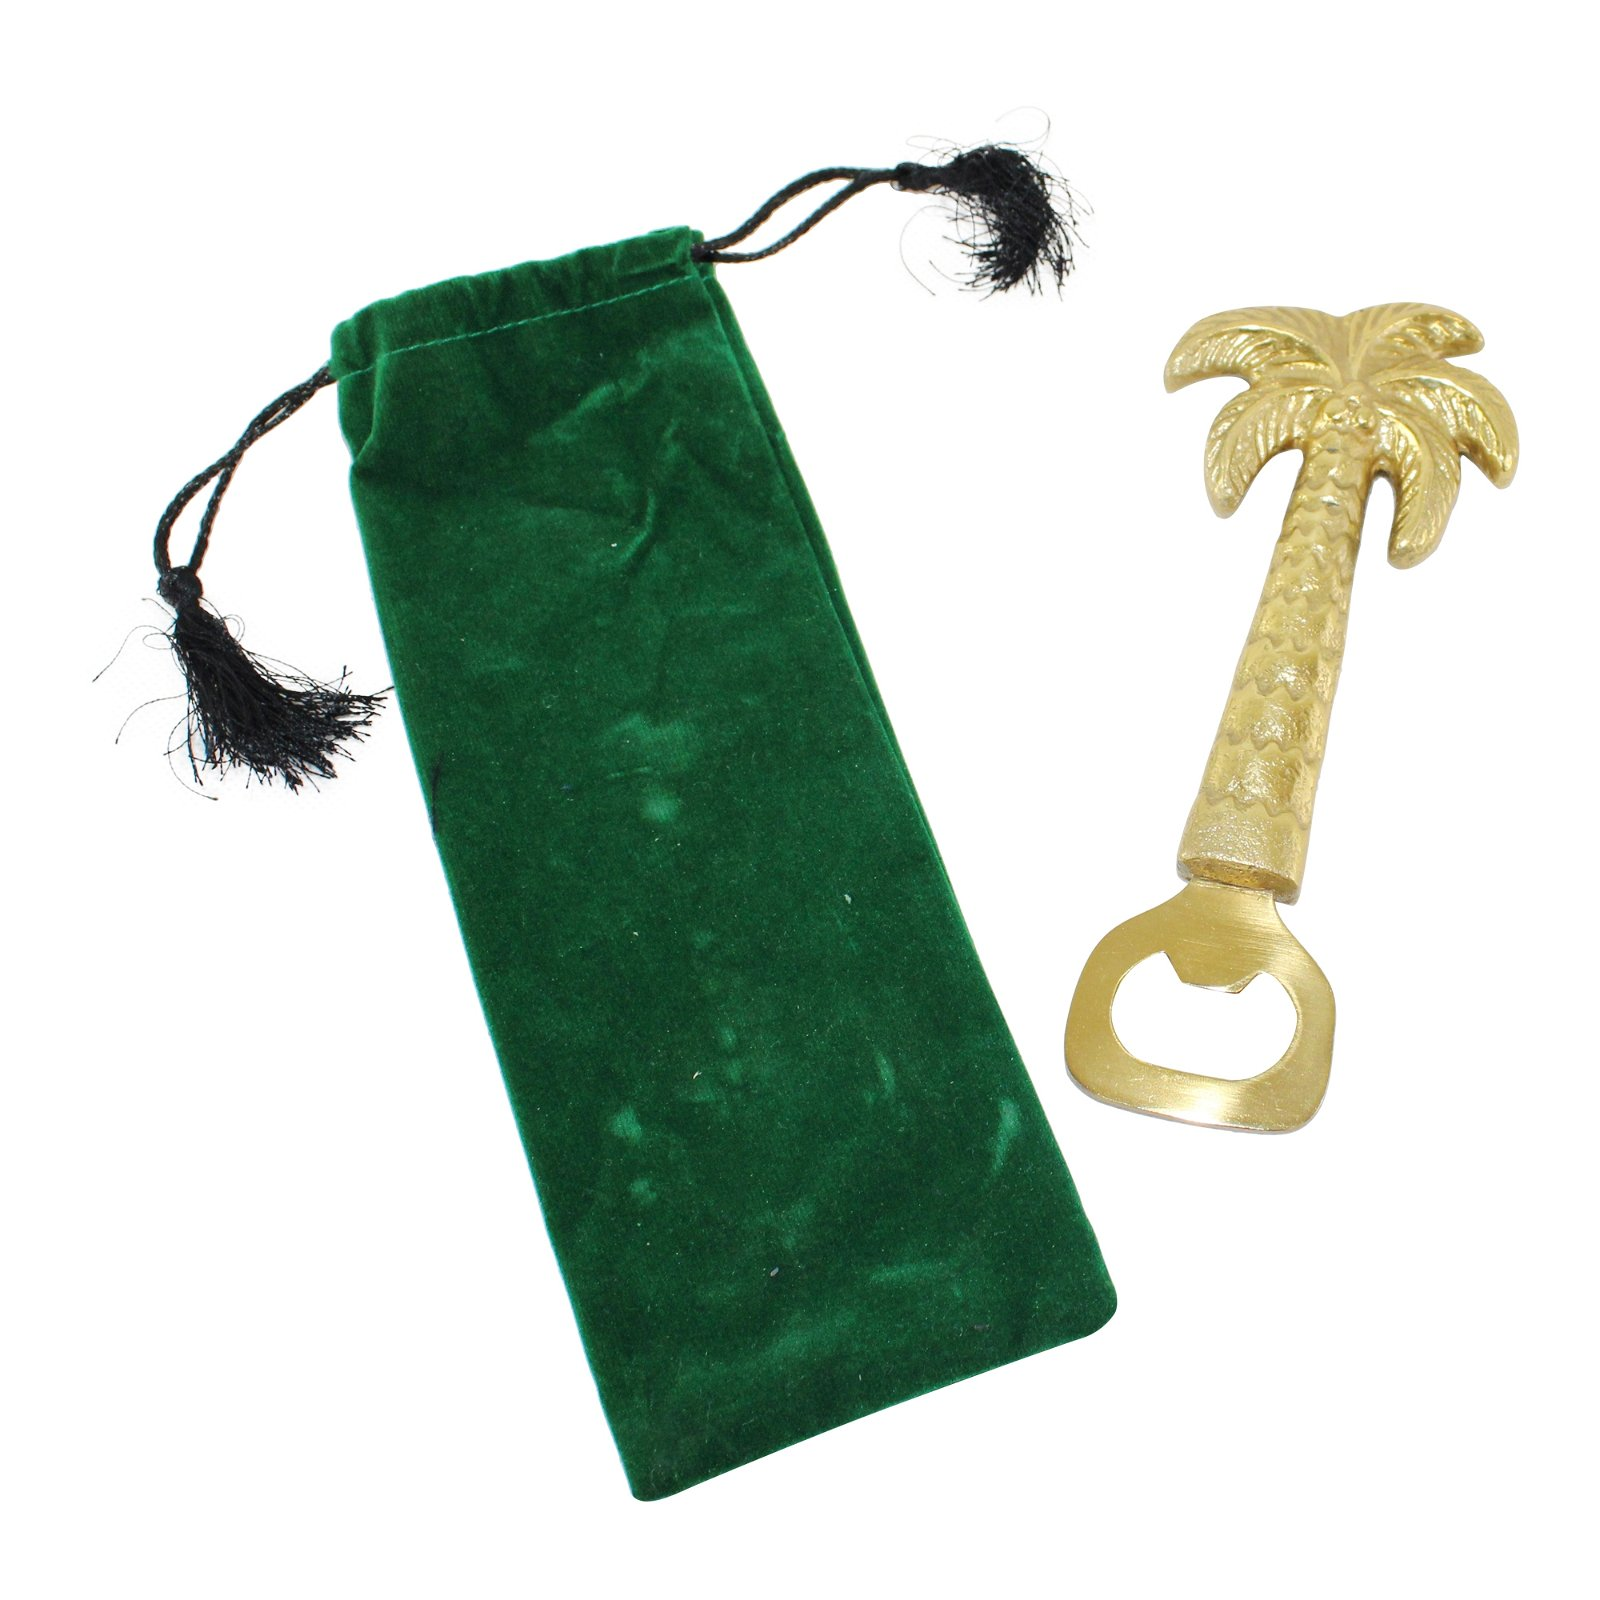 Gold Metal Palm Tree Bottle Opener